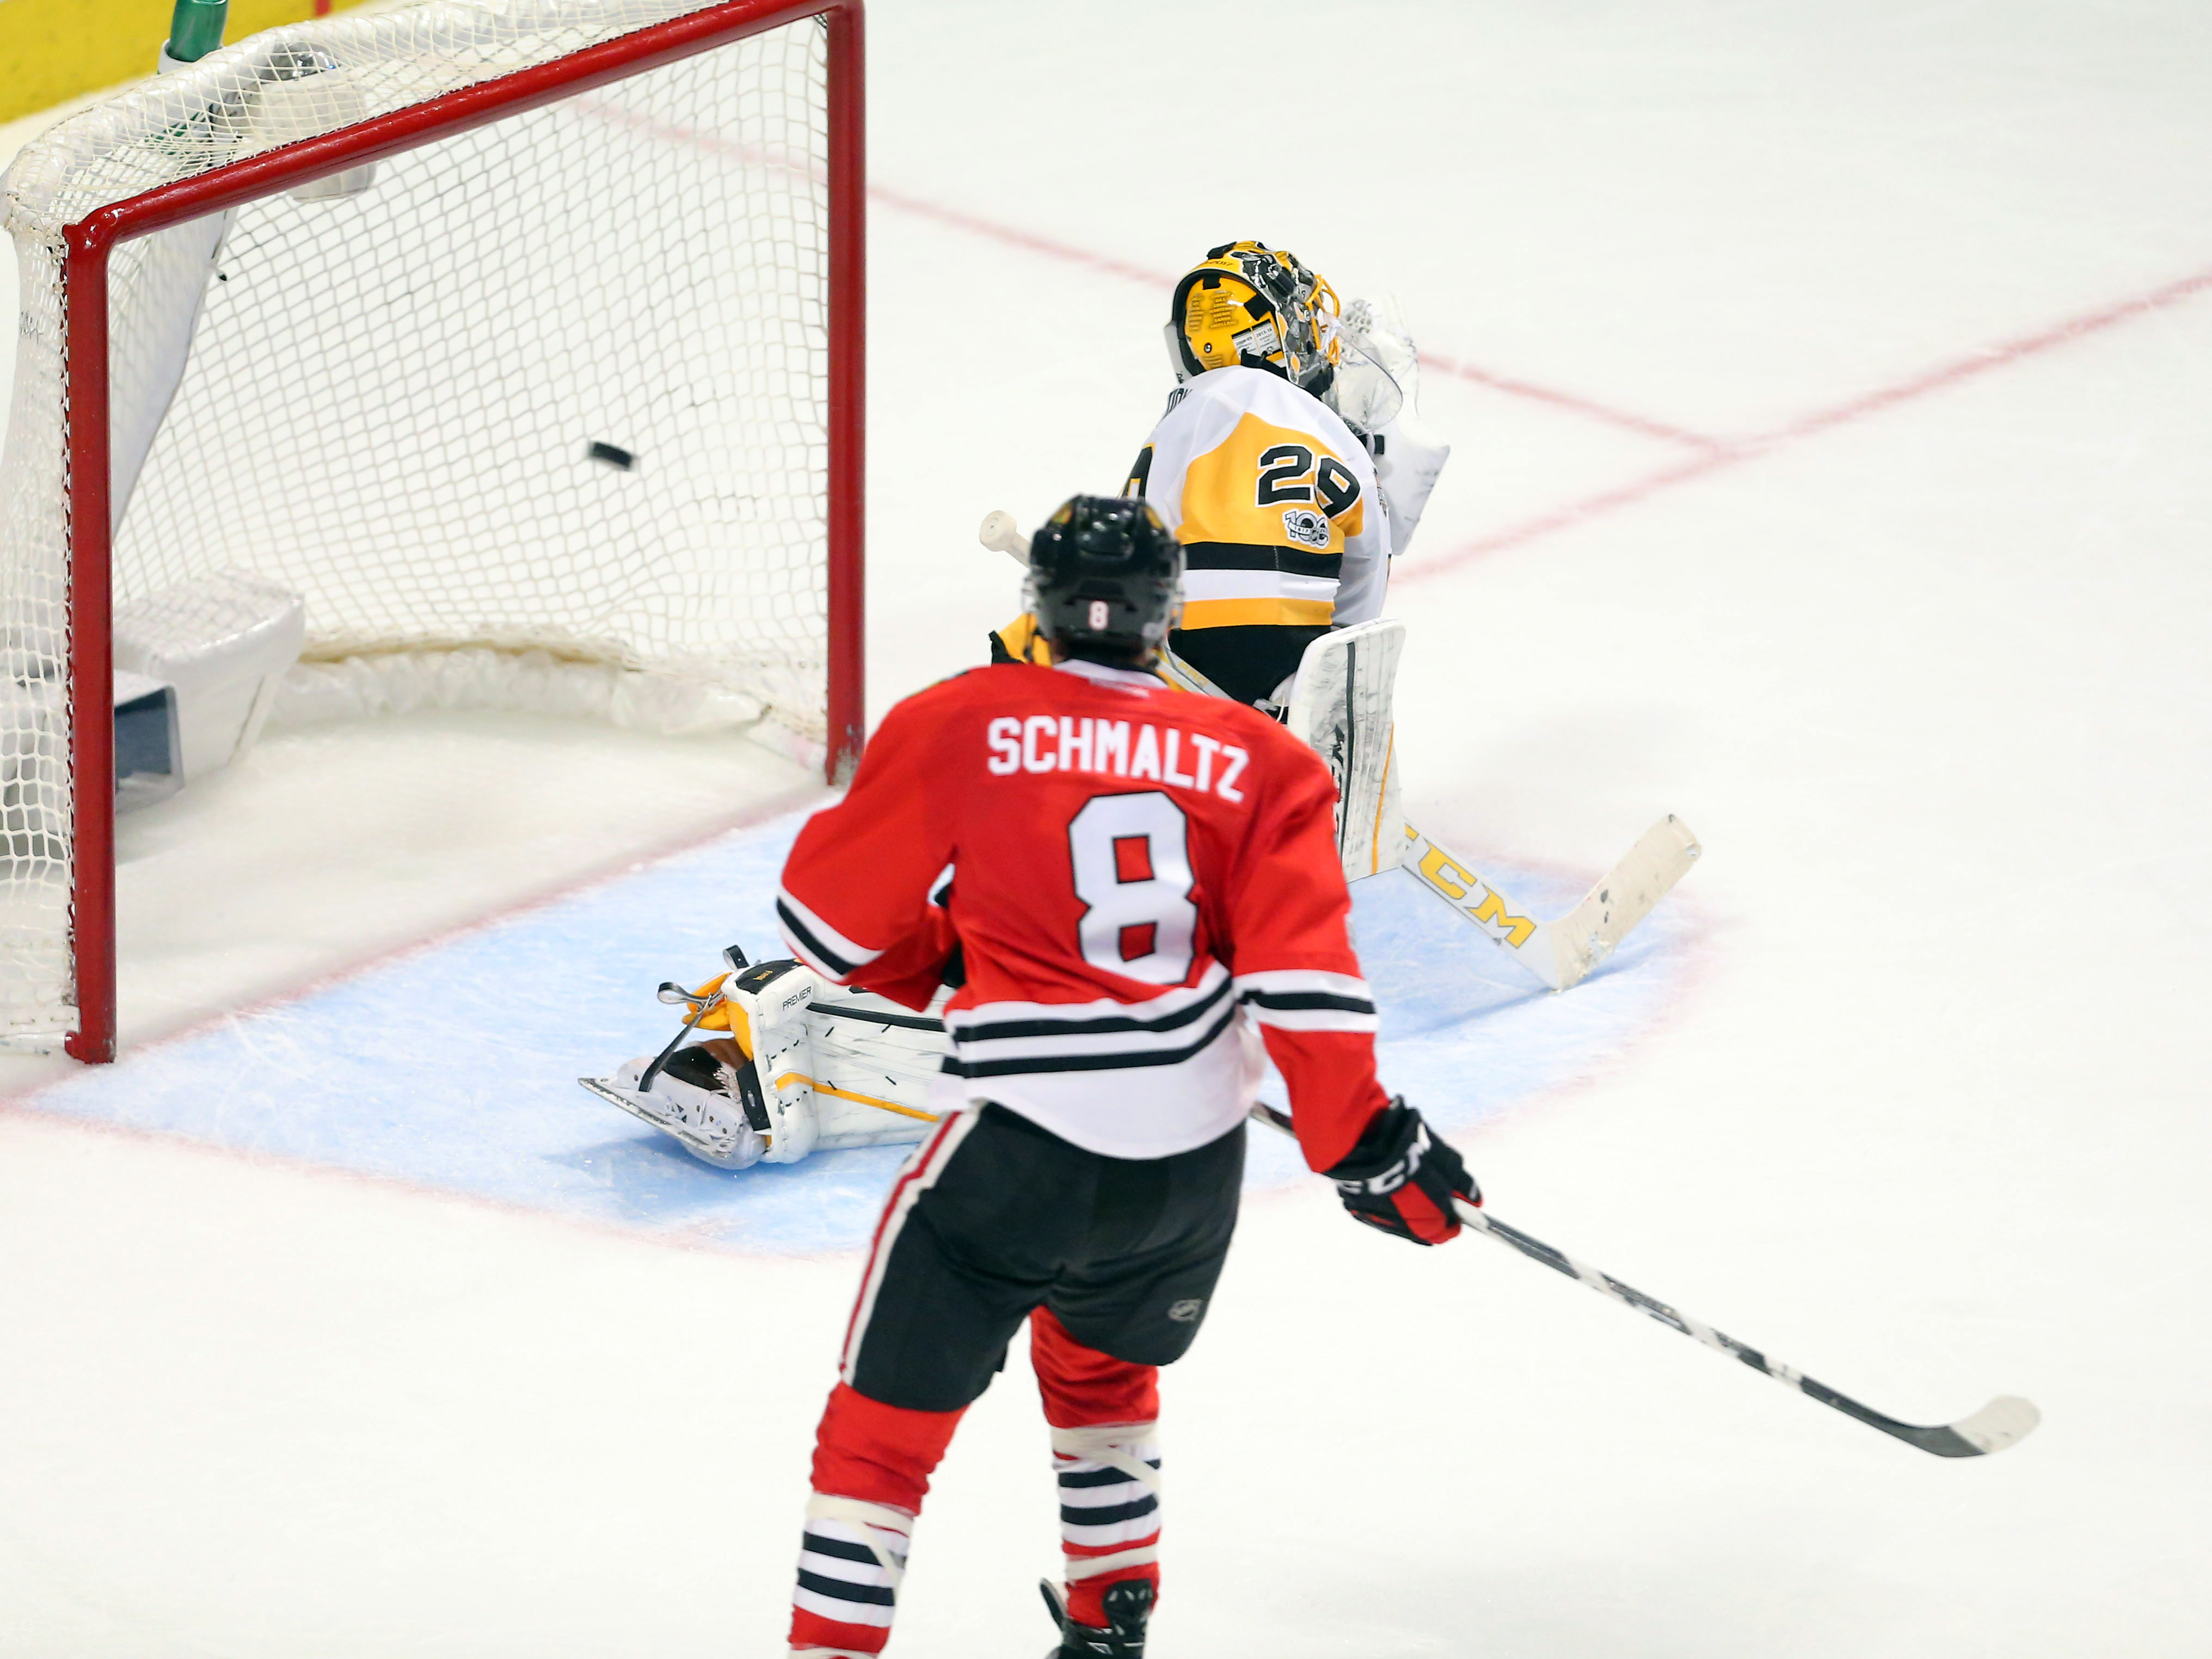 9910703-nhl-pittsburgh-penguins-at-chicago-blackhawks